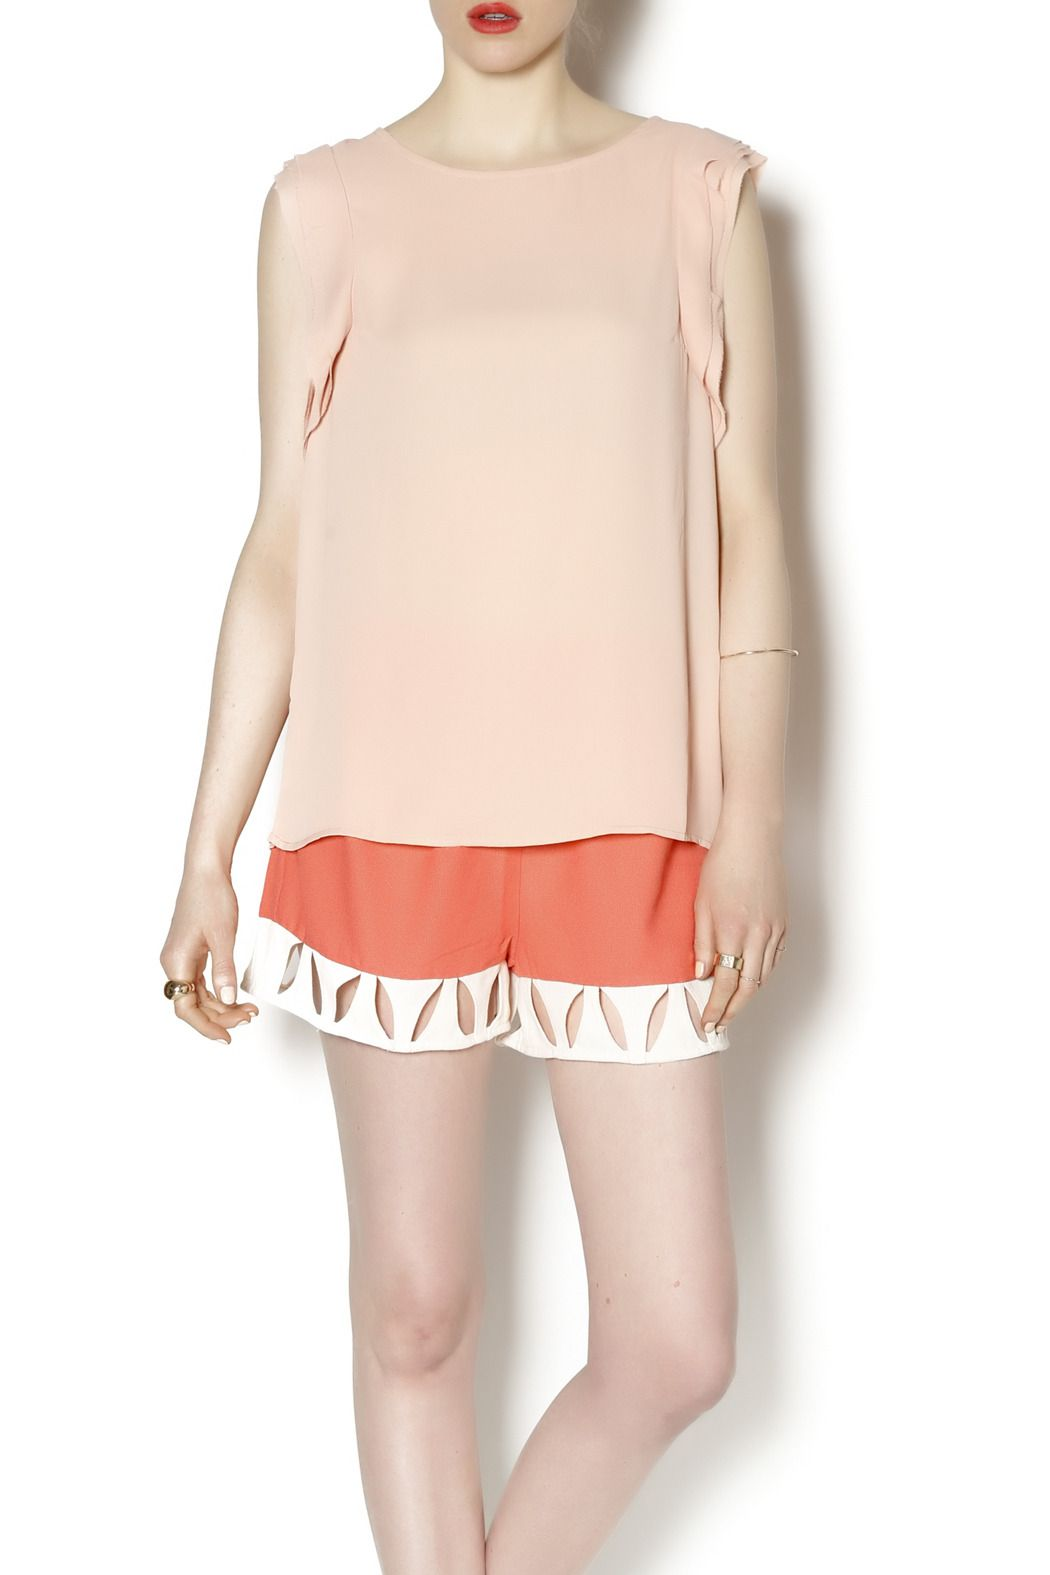 Flowy blush tank with ruffled sides. This tank can be worn to dinner dates or with jeans. You're sure to get a lot of wears out of this top.   Blush Dress Blouse by olive & oak. Clothing - Tops - Sleeveless Clothing - Tops - Blouses & Shirts New Jersey